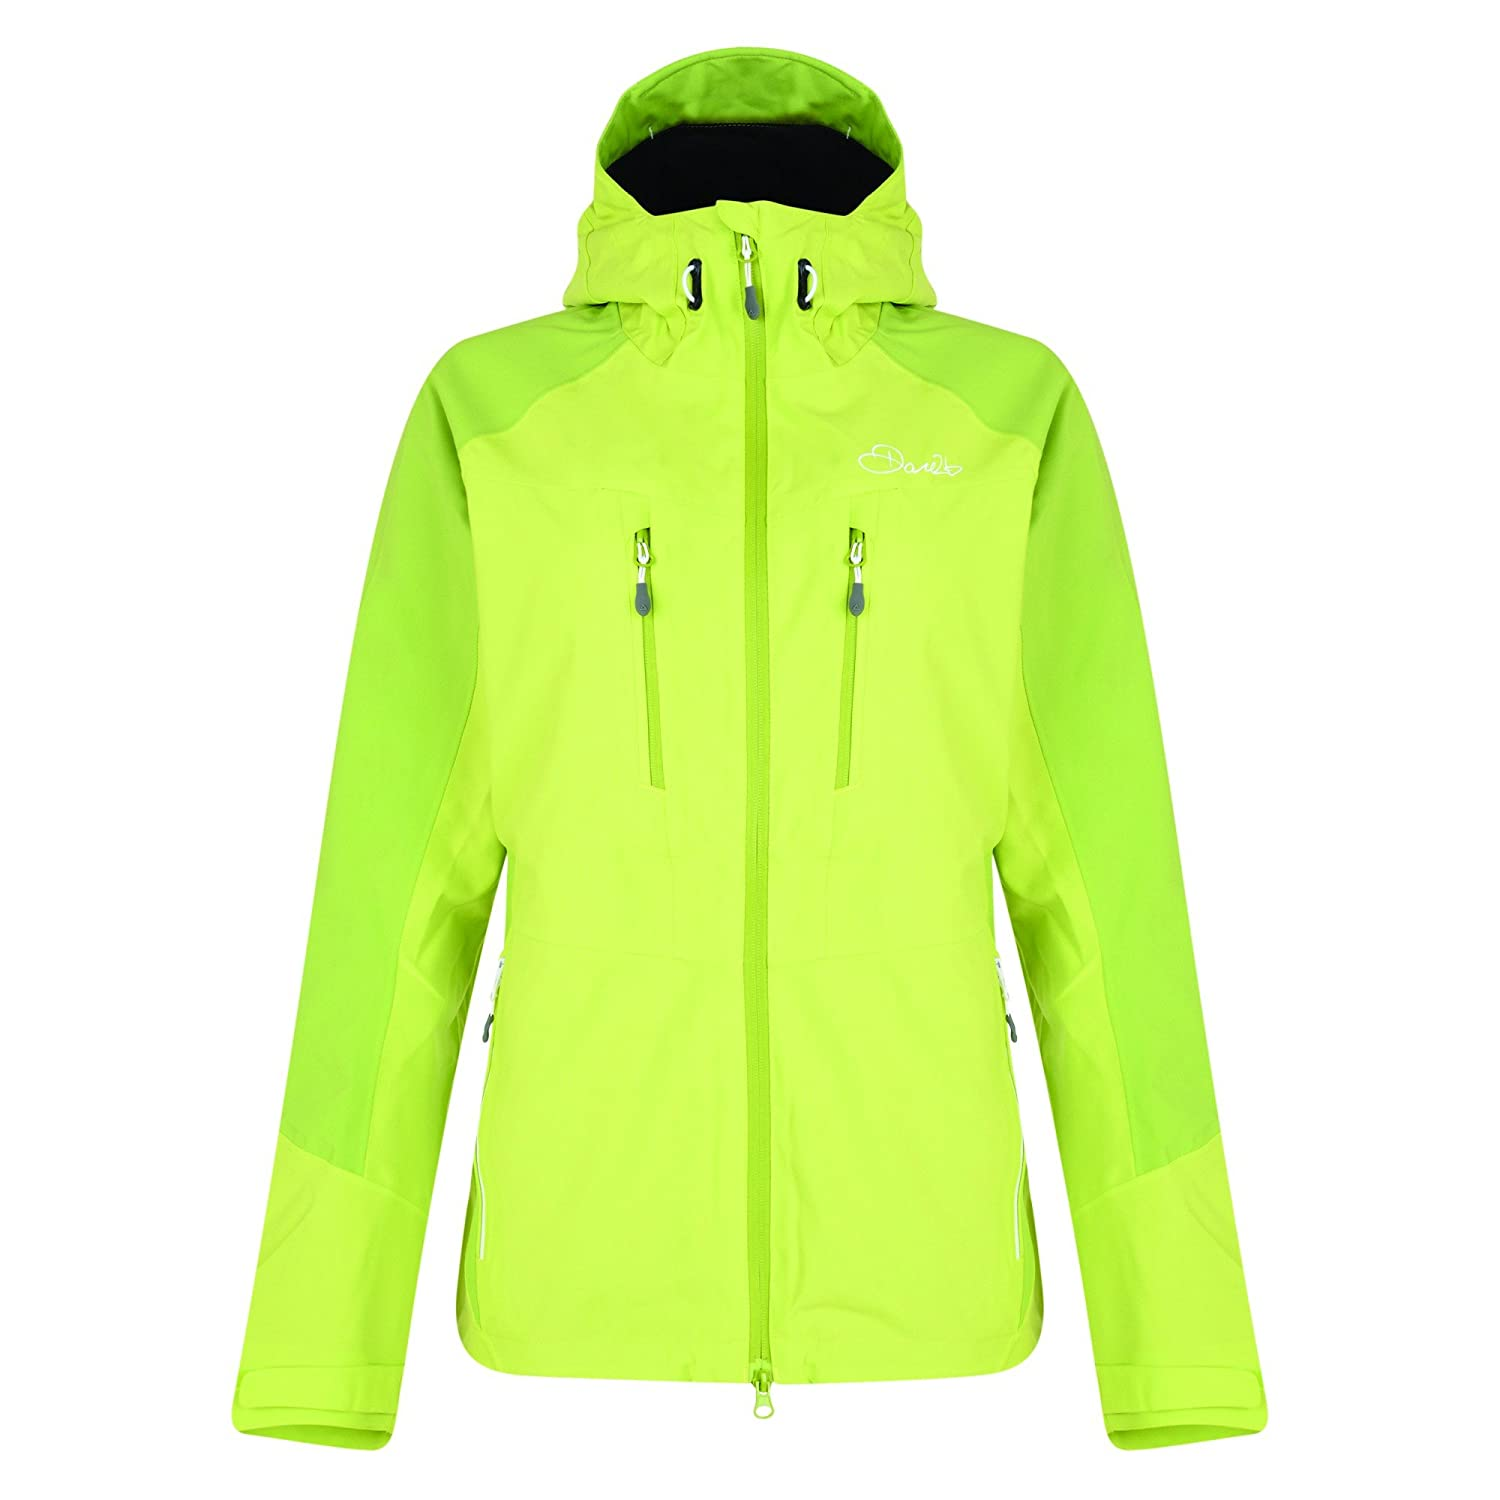 Dare 2b Damen Jacke Women'Candor